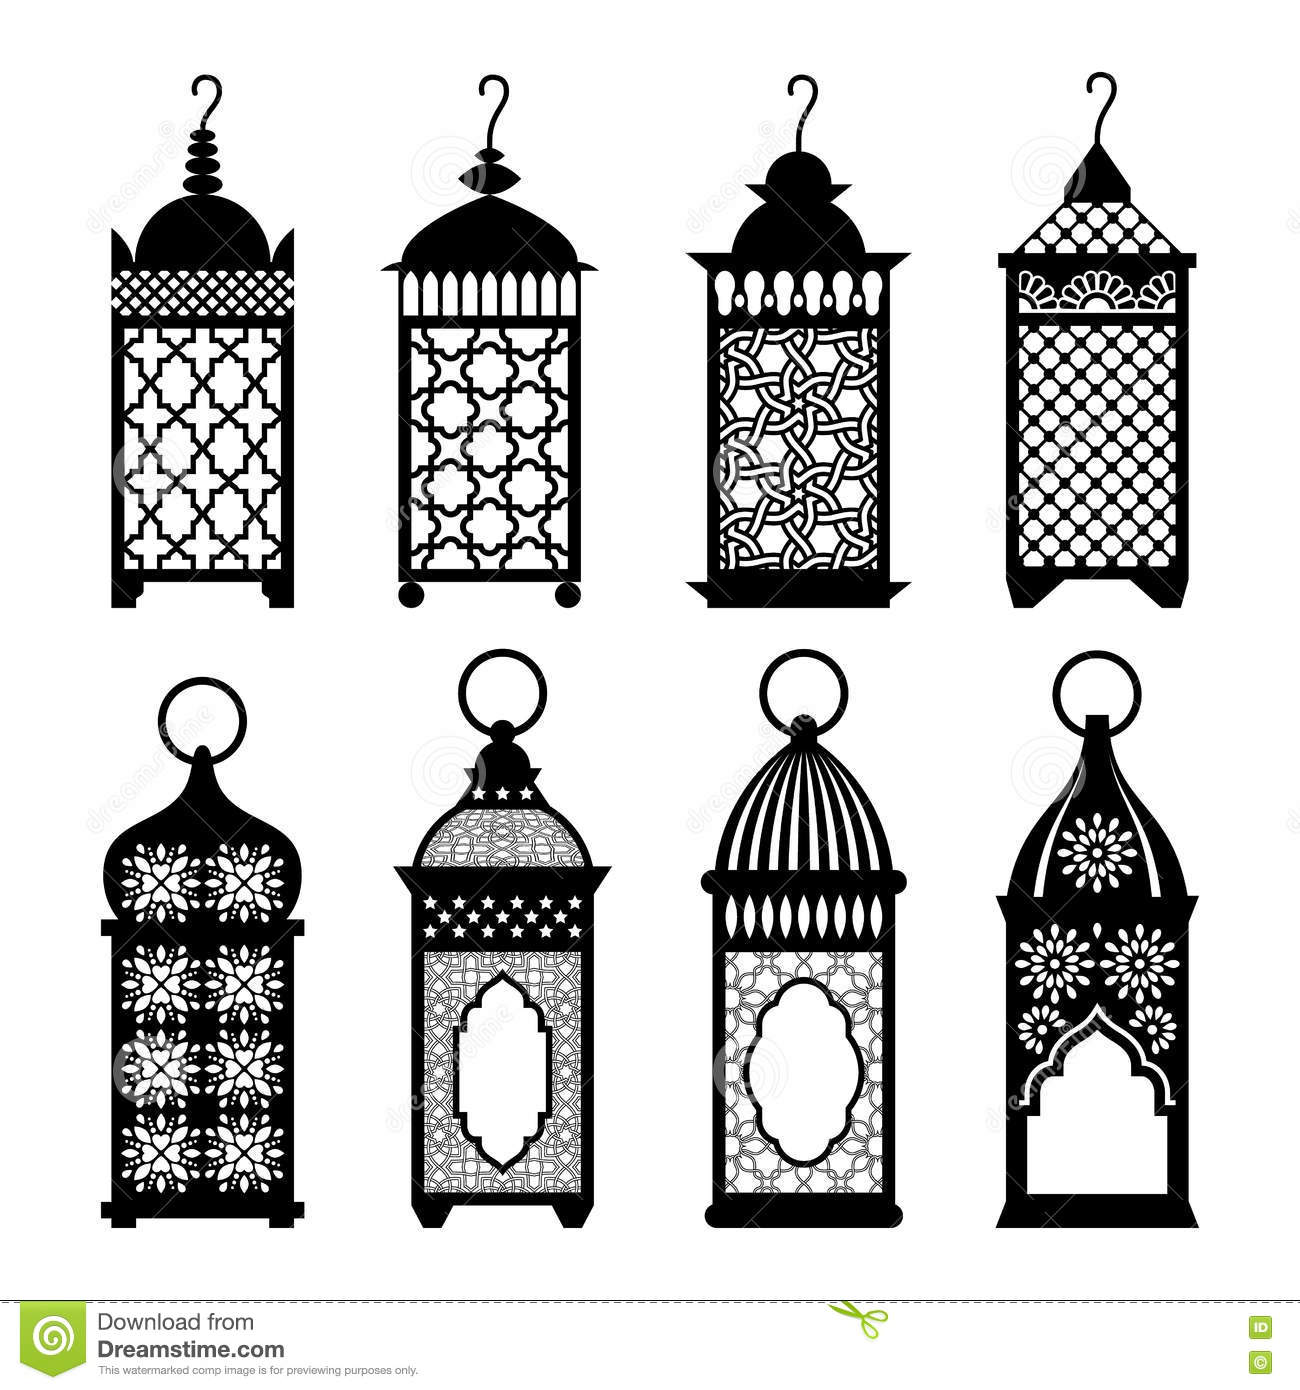 These Images Will Help You Understand The Words Ramadan Symbol White Background In Detail All Found Global Network And Can Be Used Only